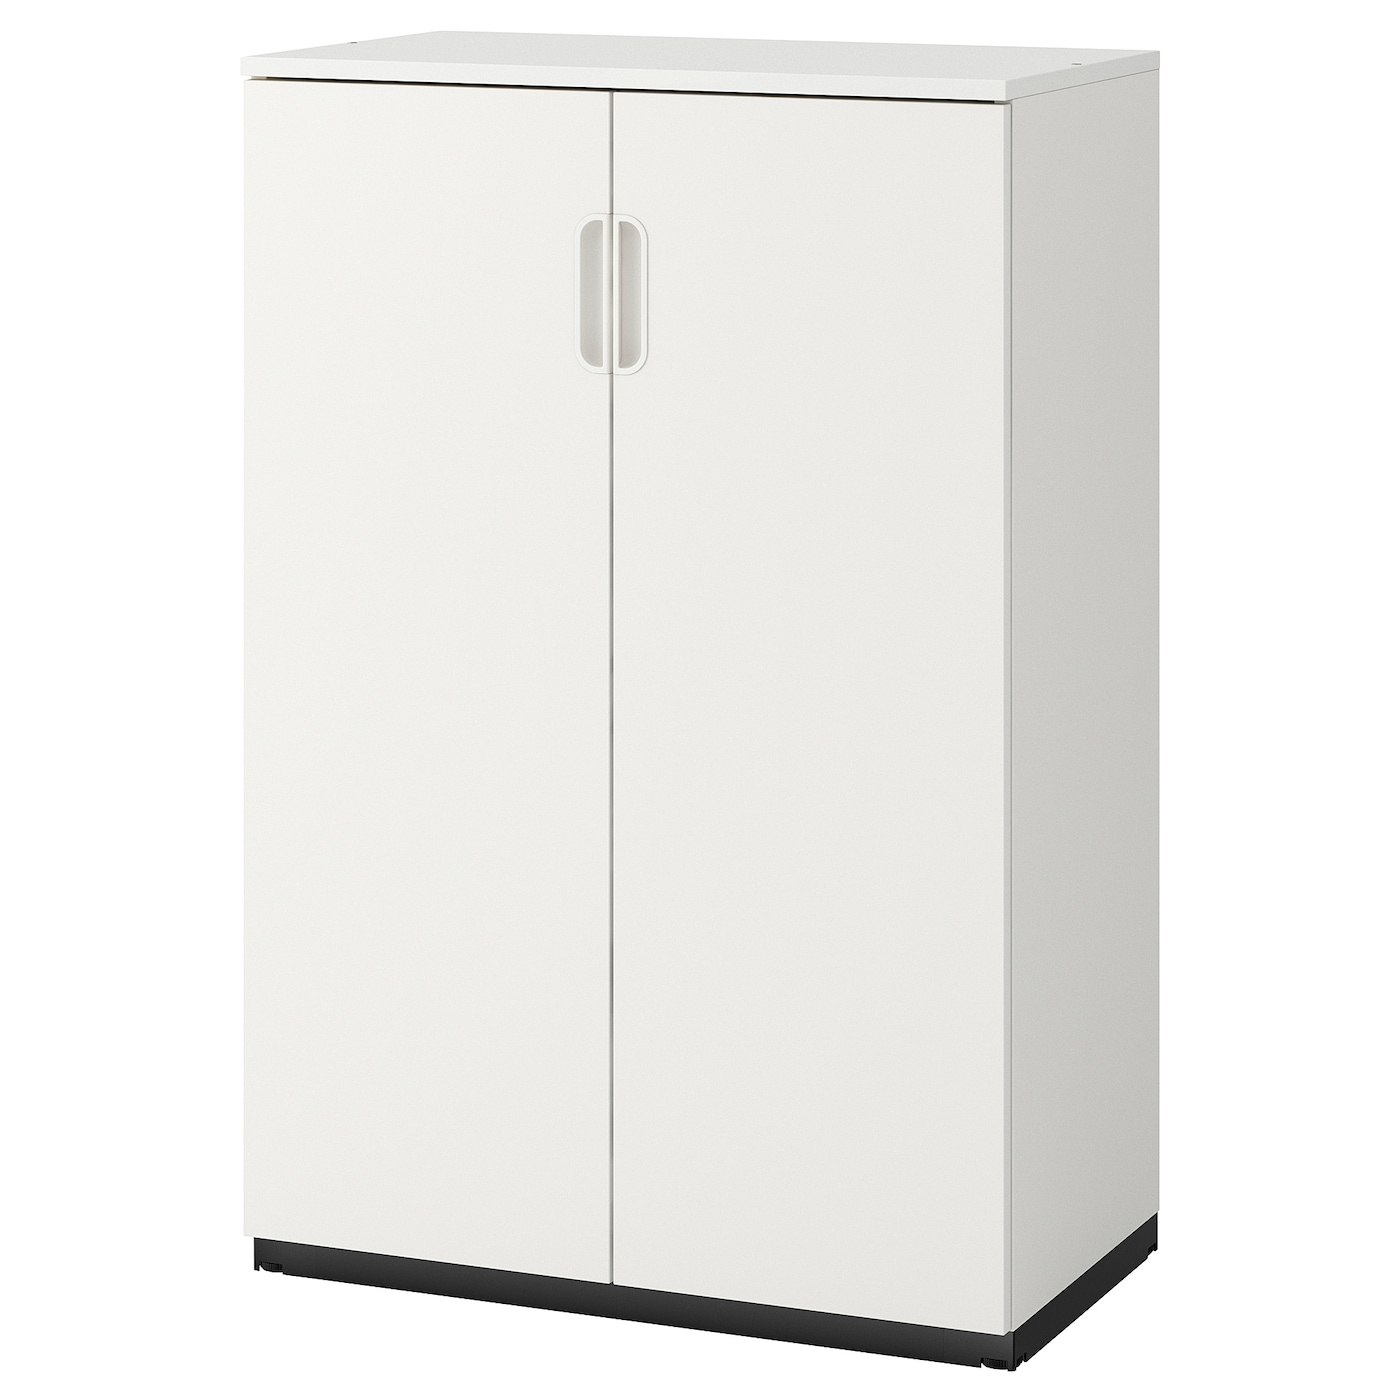 Galant Cabinet With Doors White 31 1 2x47 1 4 Ikea